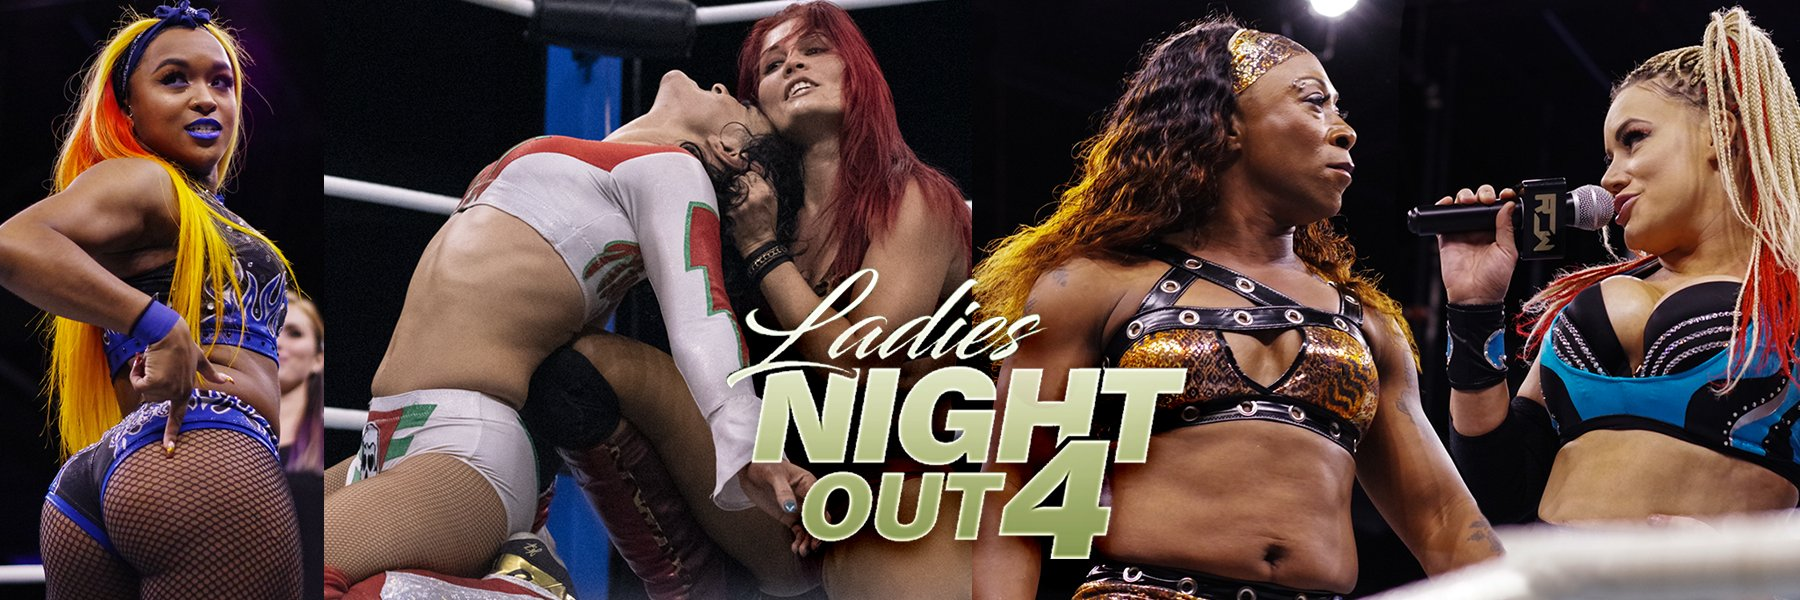 Ladies Night Out 4 - Taya Valkyrie vs Jazz, Ivelisse vs Thunder, Su Yung